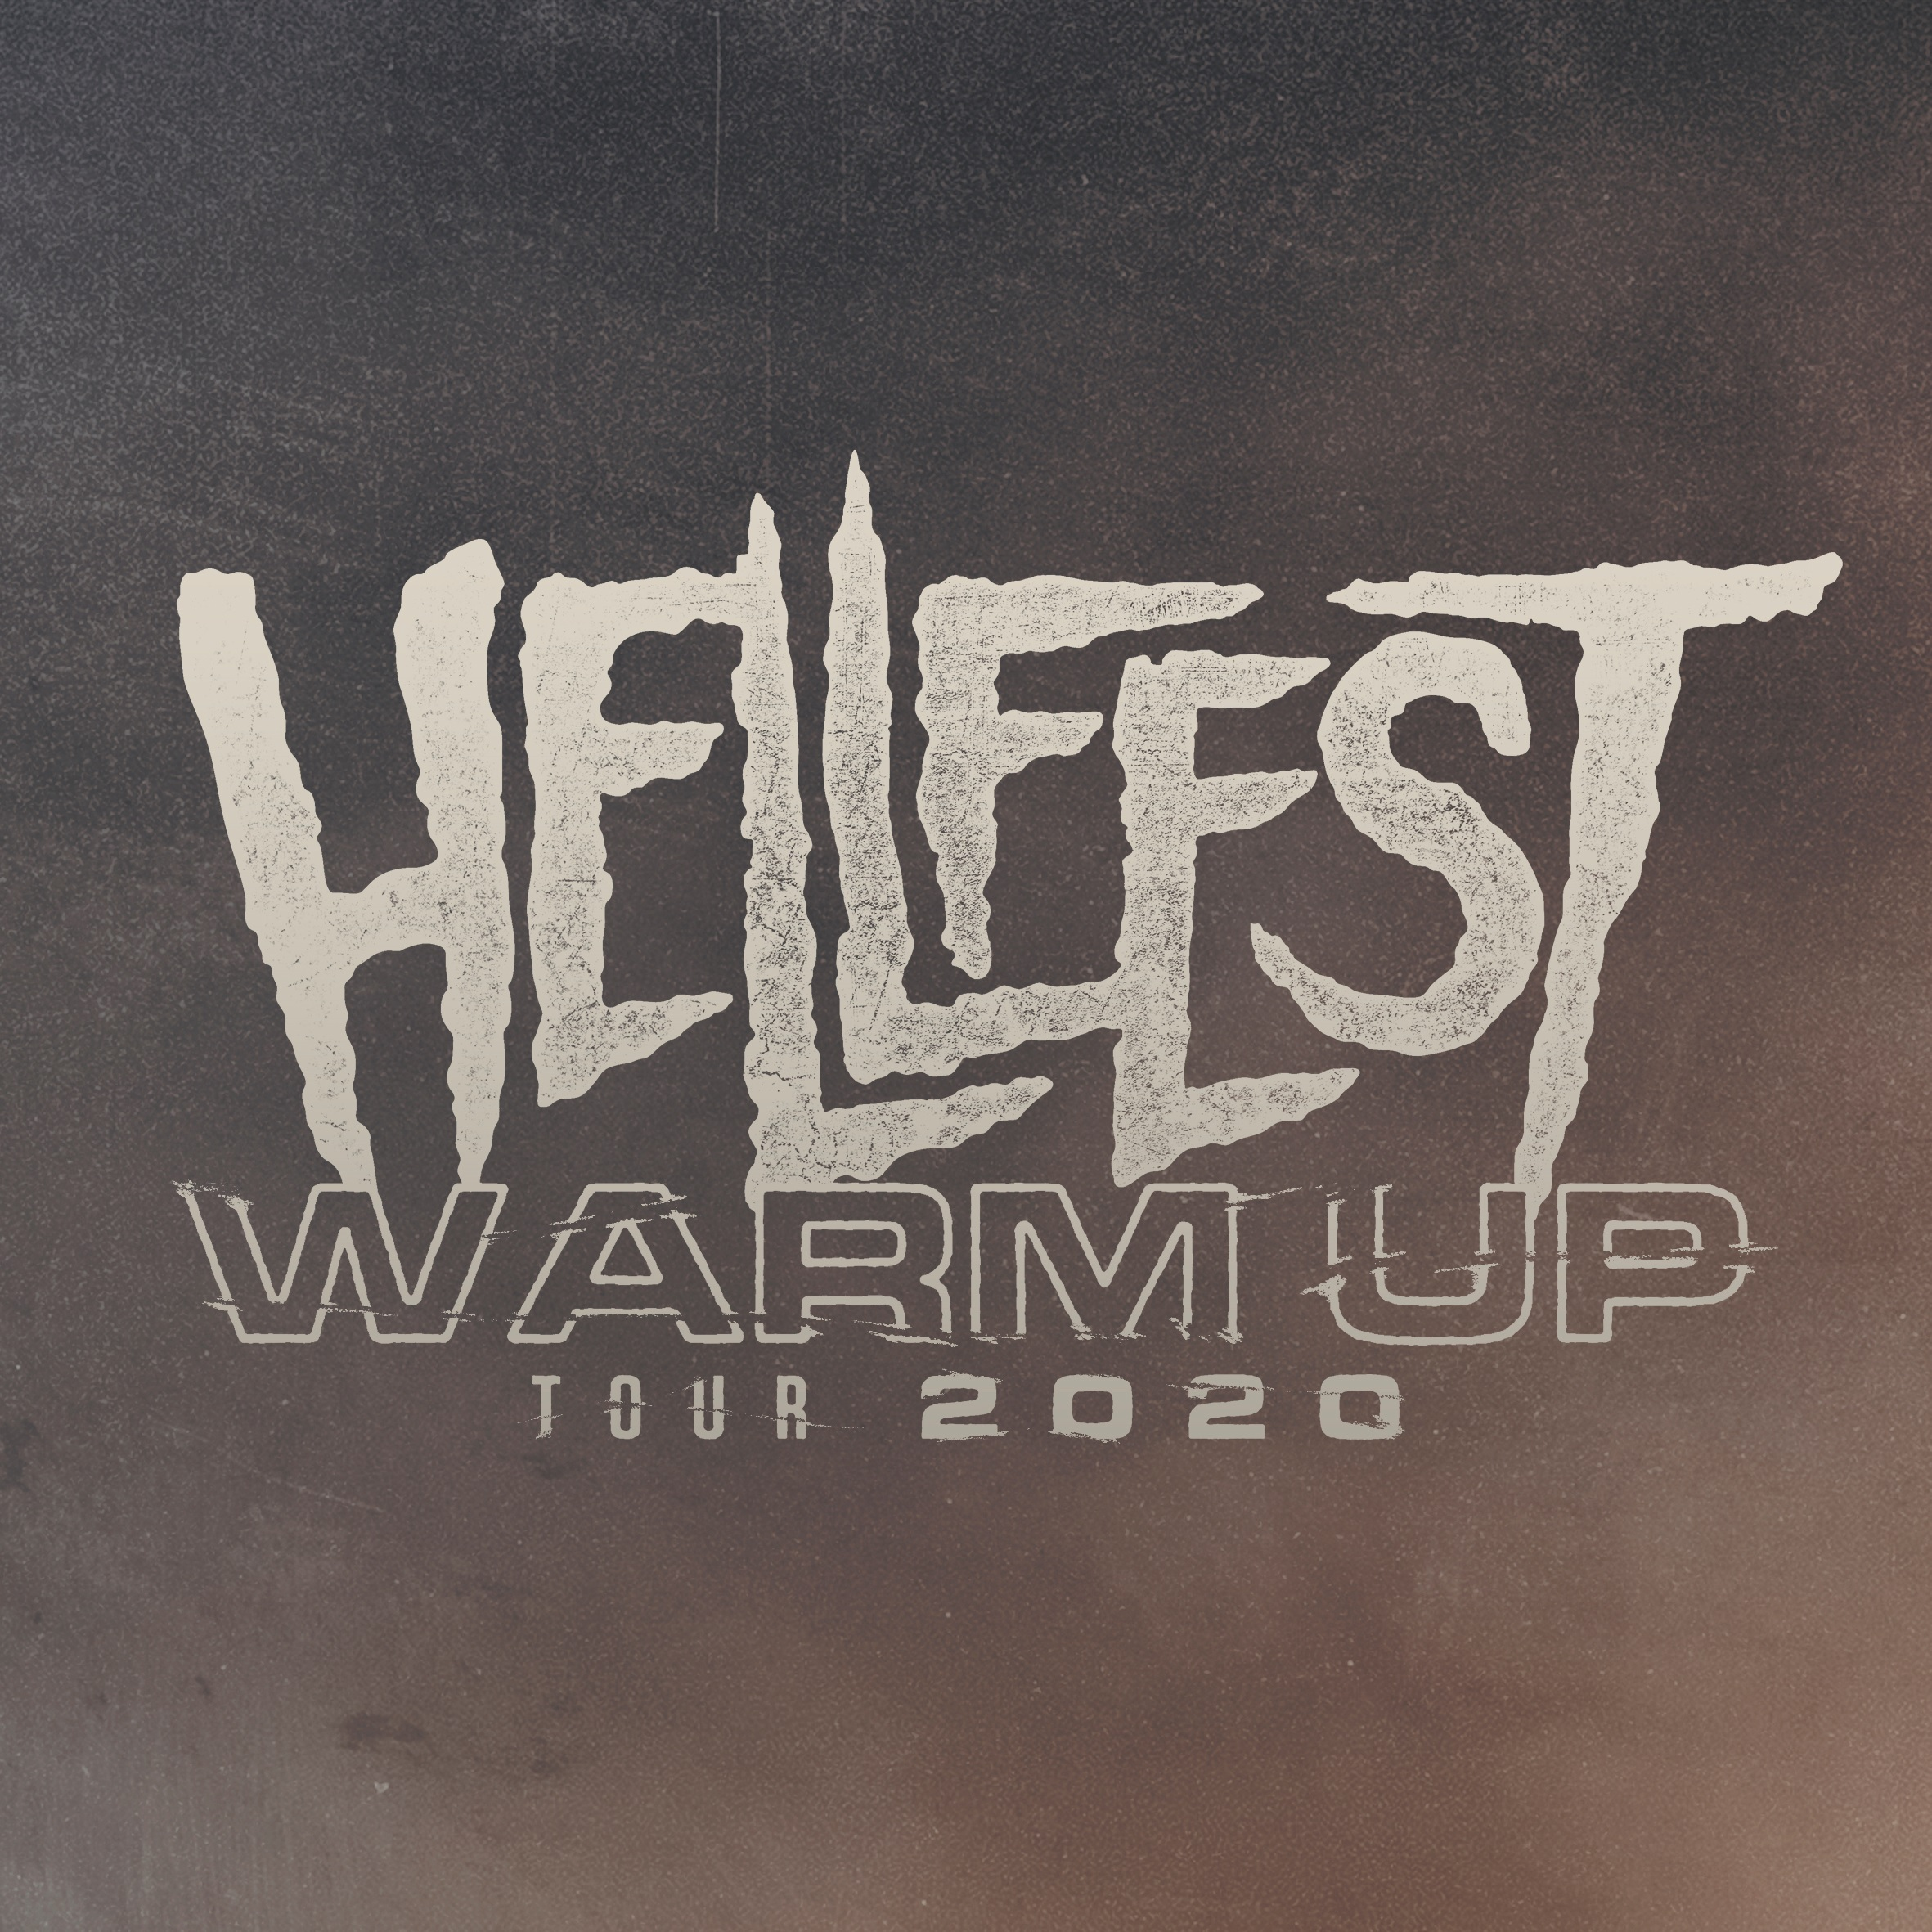 HELLFEST WARM UP TOUR 2020 - ANNULE